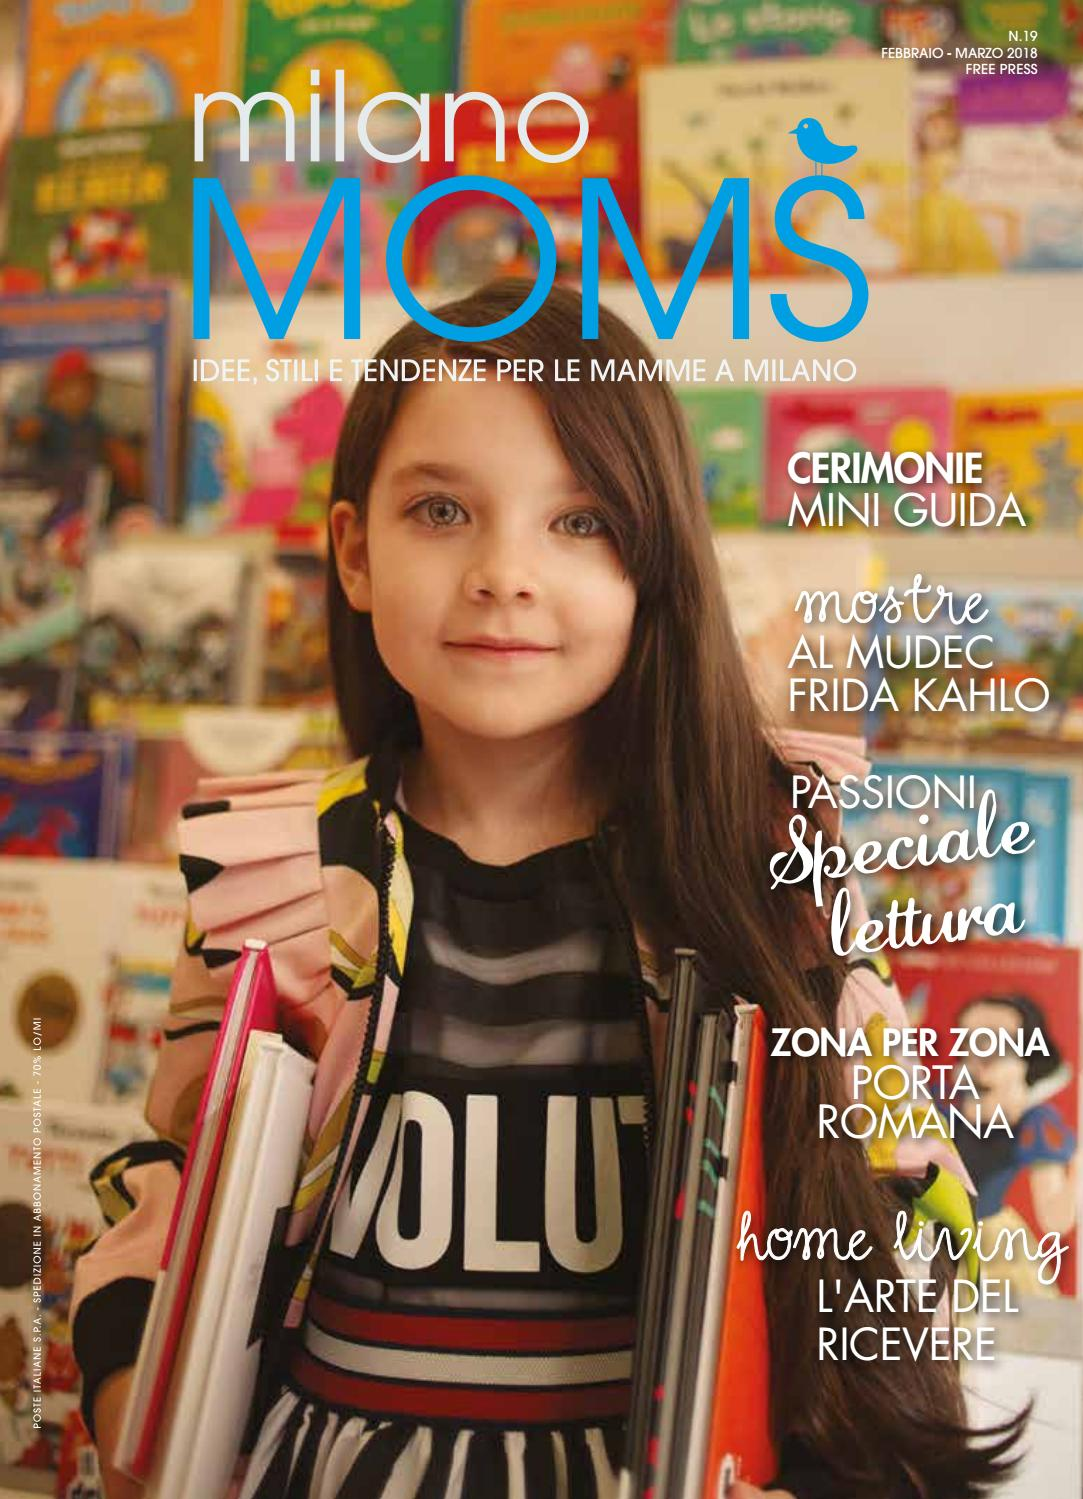 Milano MOMS n.19 - 2018 by milanoMOMS - issuu aa444827a7d